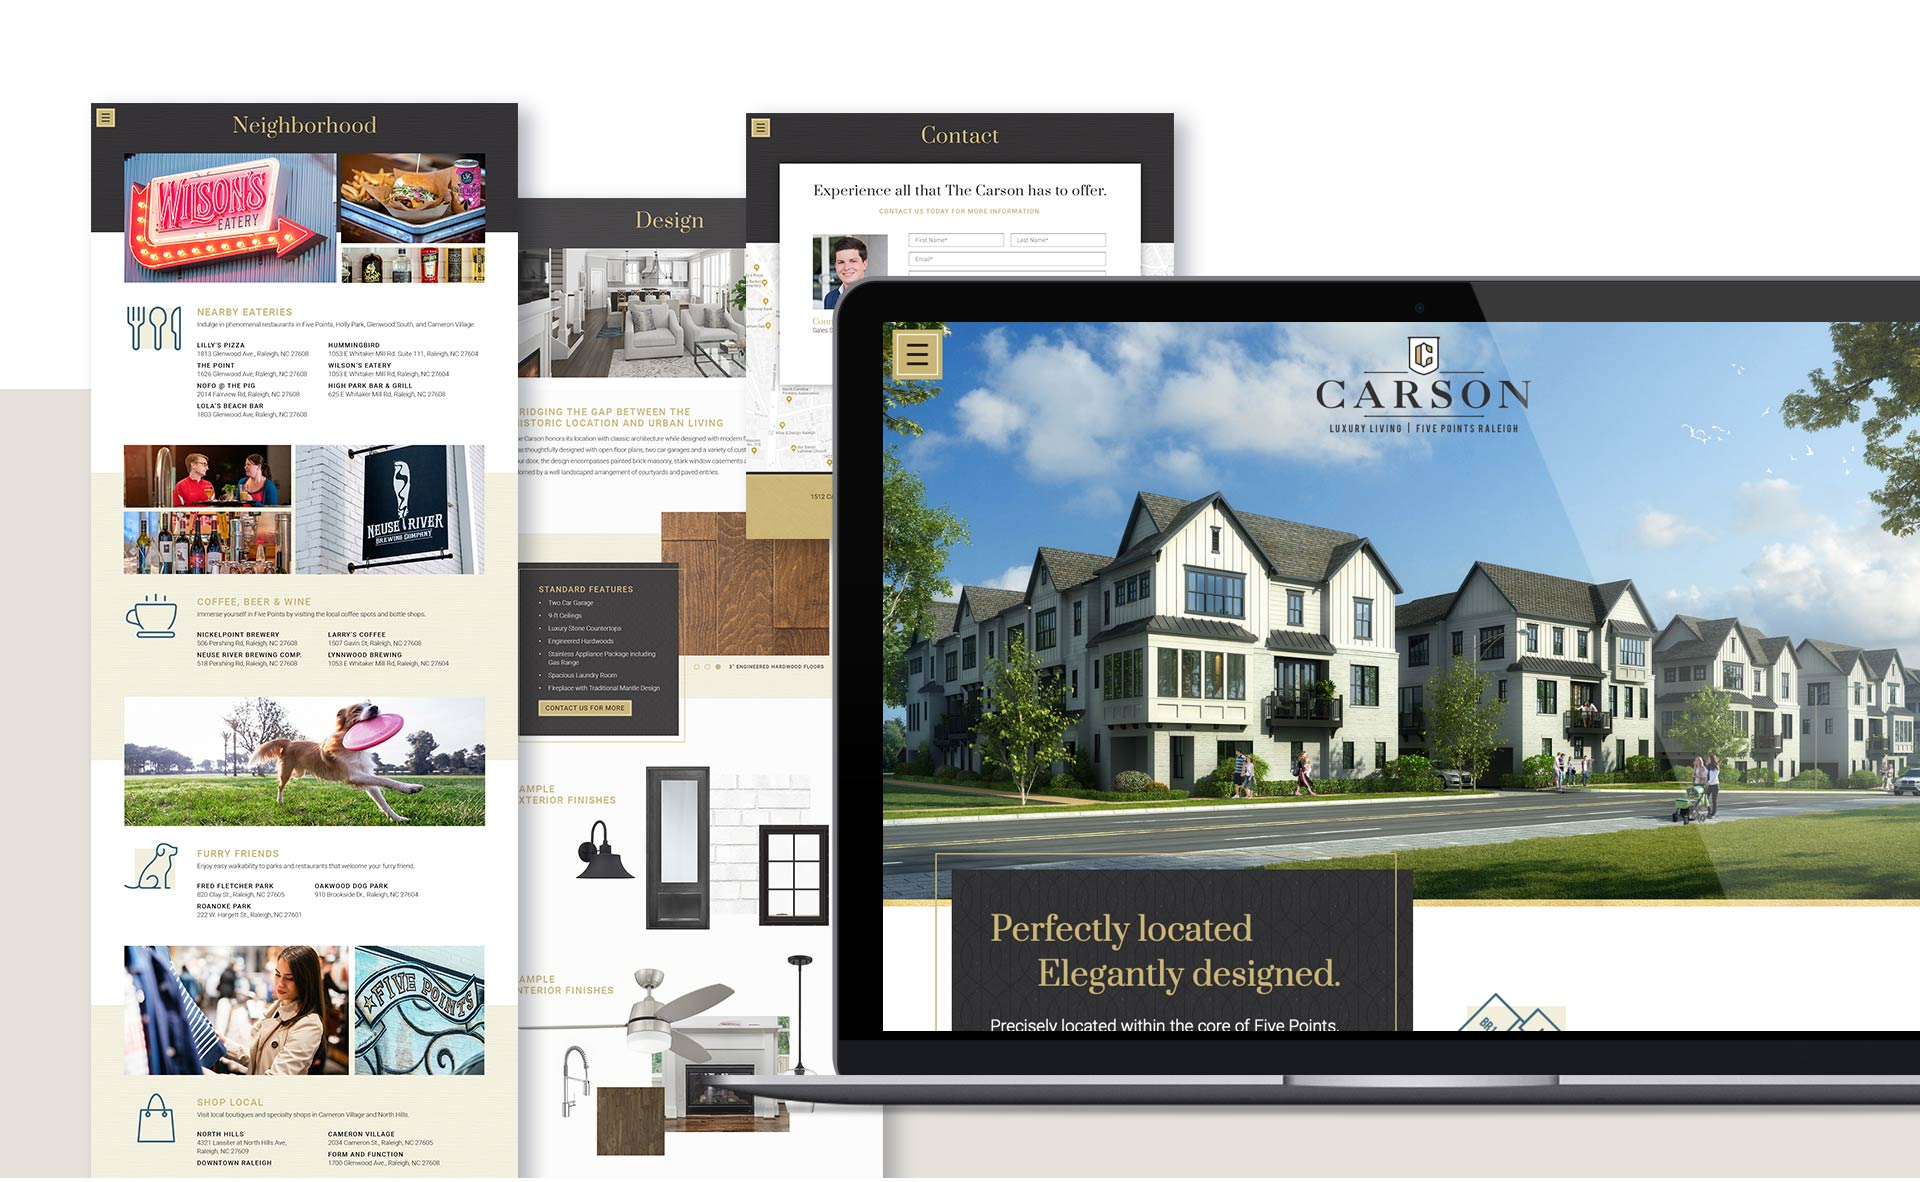 The Carson - Website Design by Springer Studios, Raleigh, NC